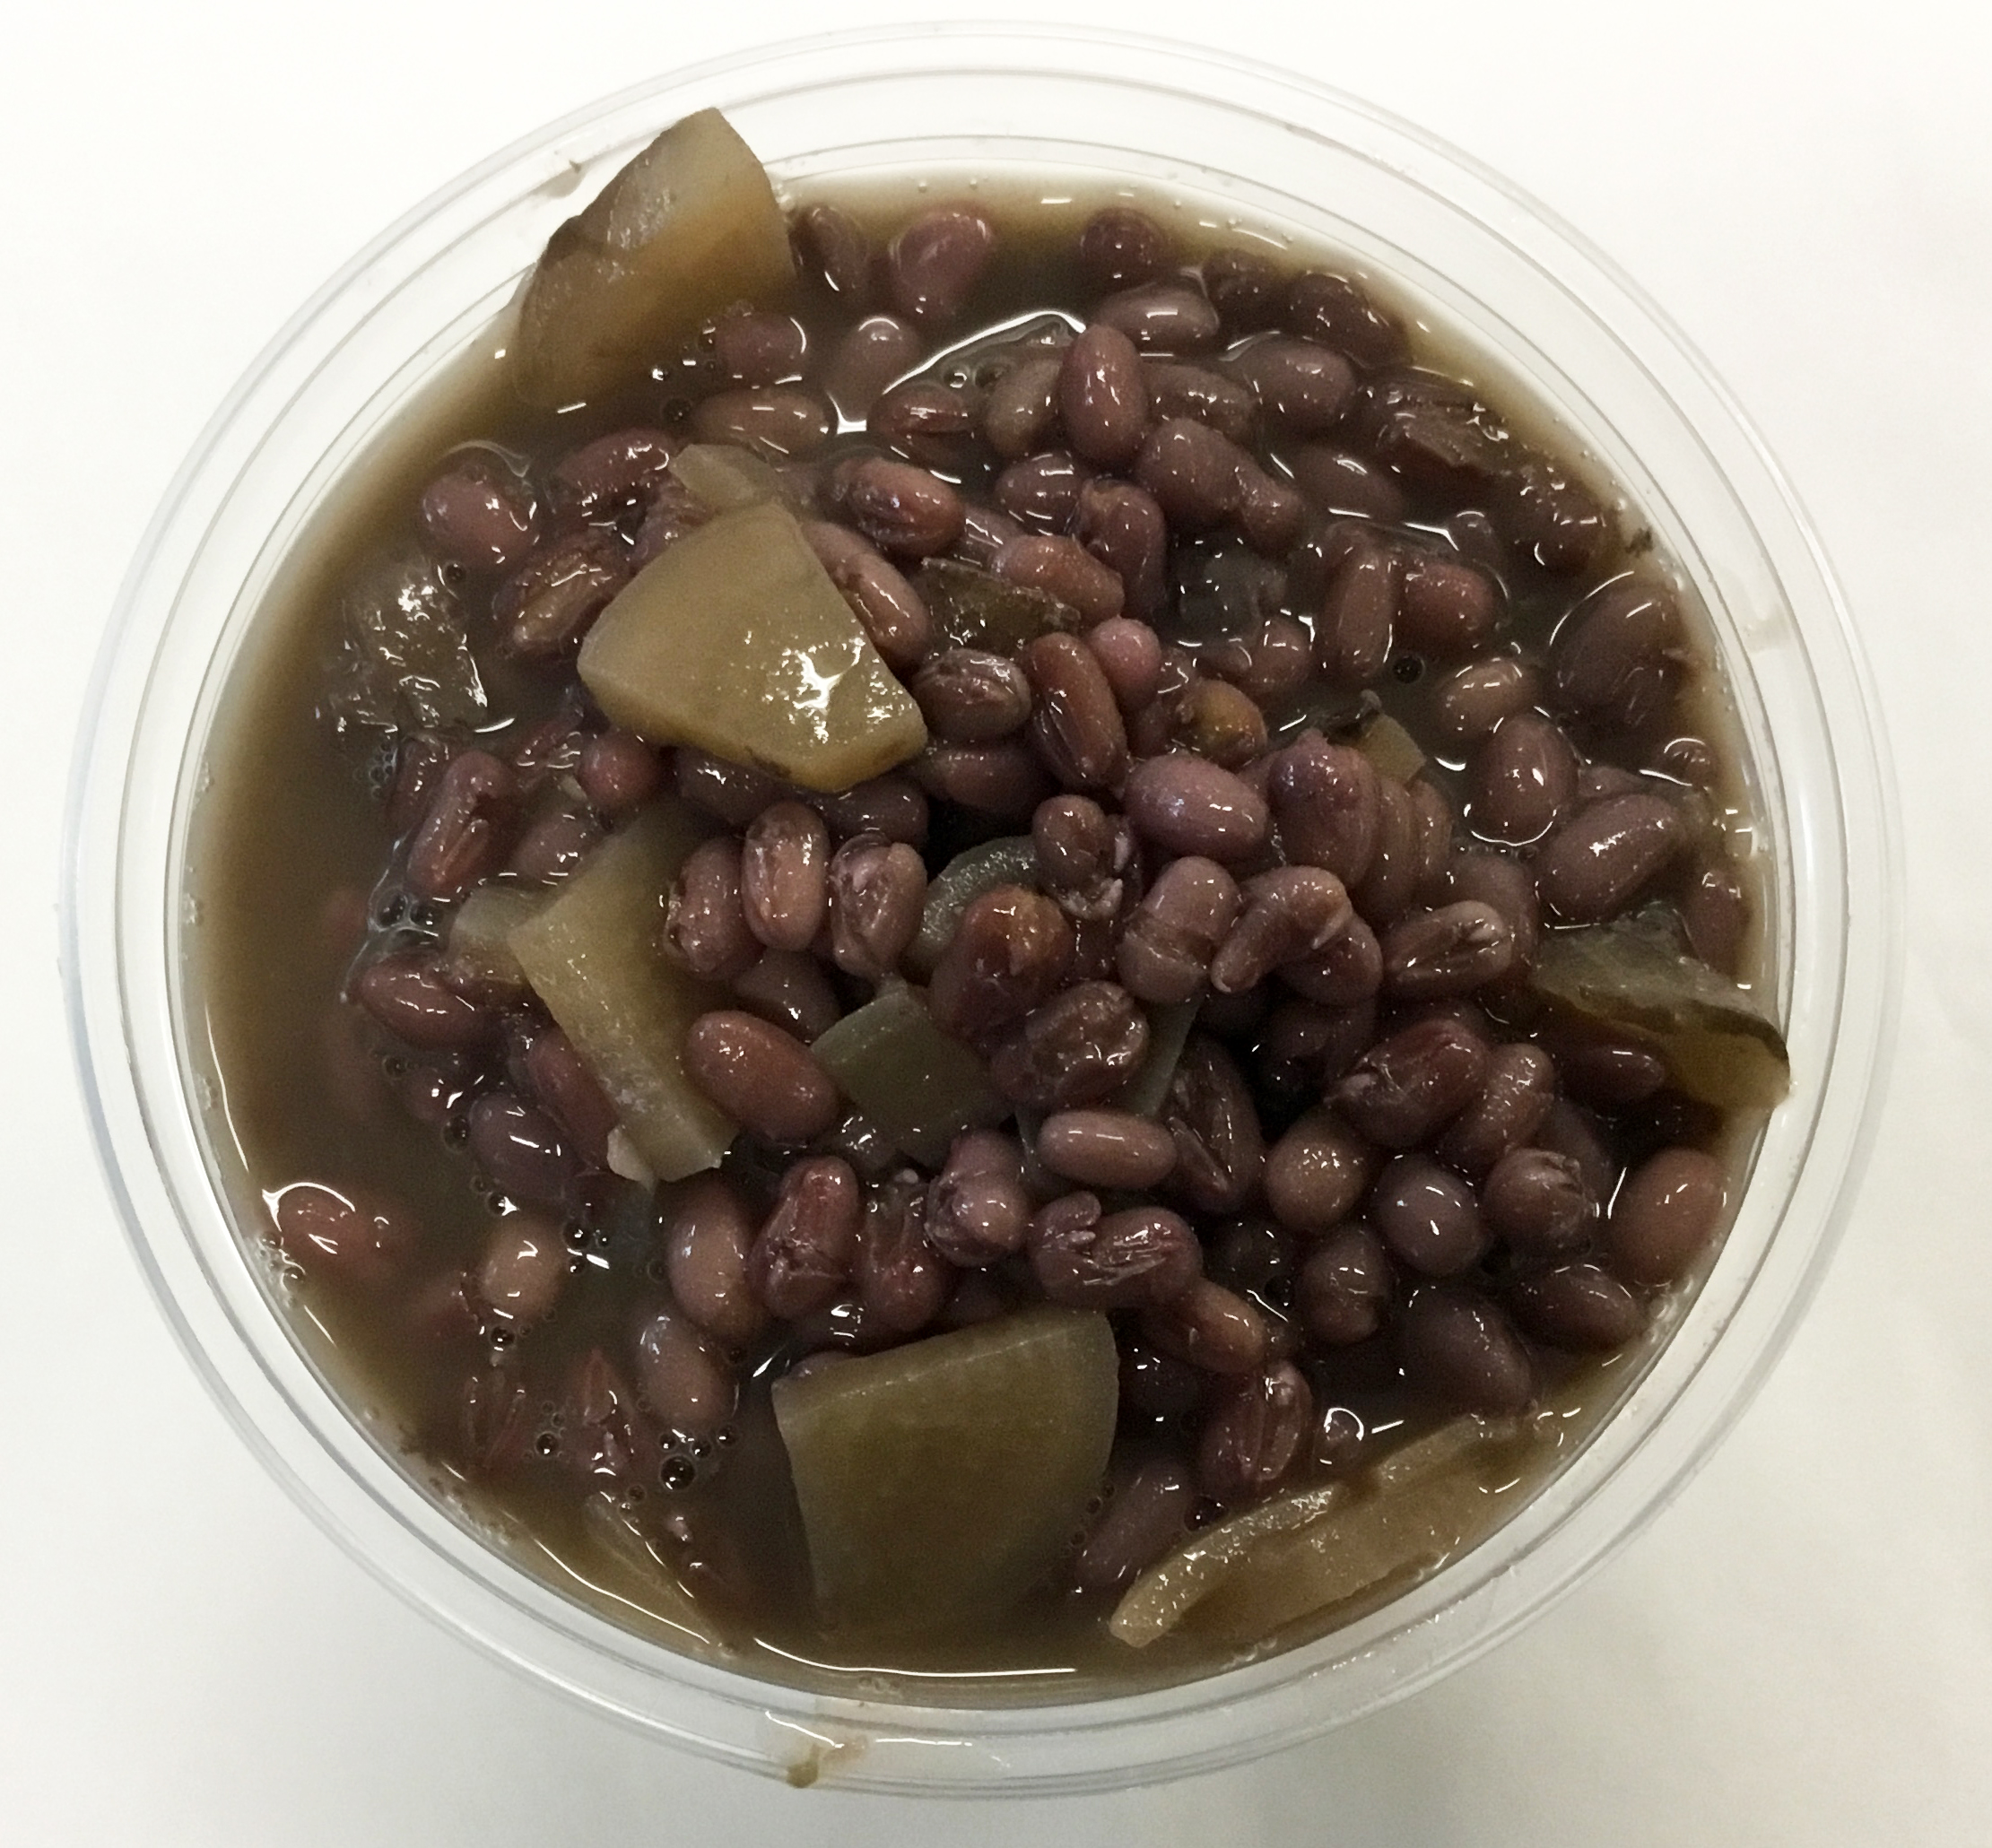 adzuki bean soup with white onion, daikon and tamari